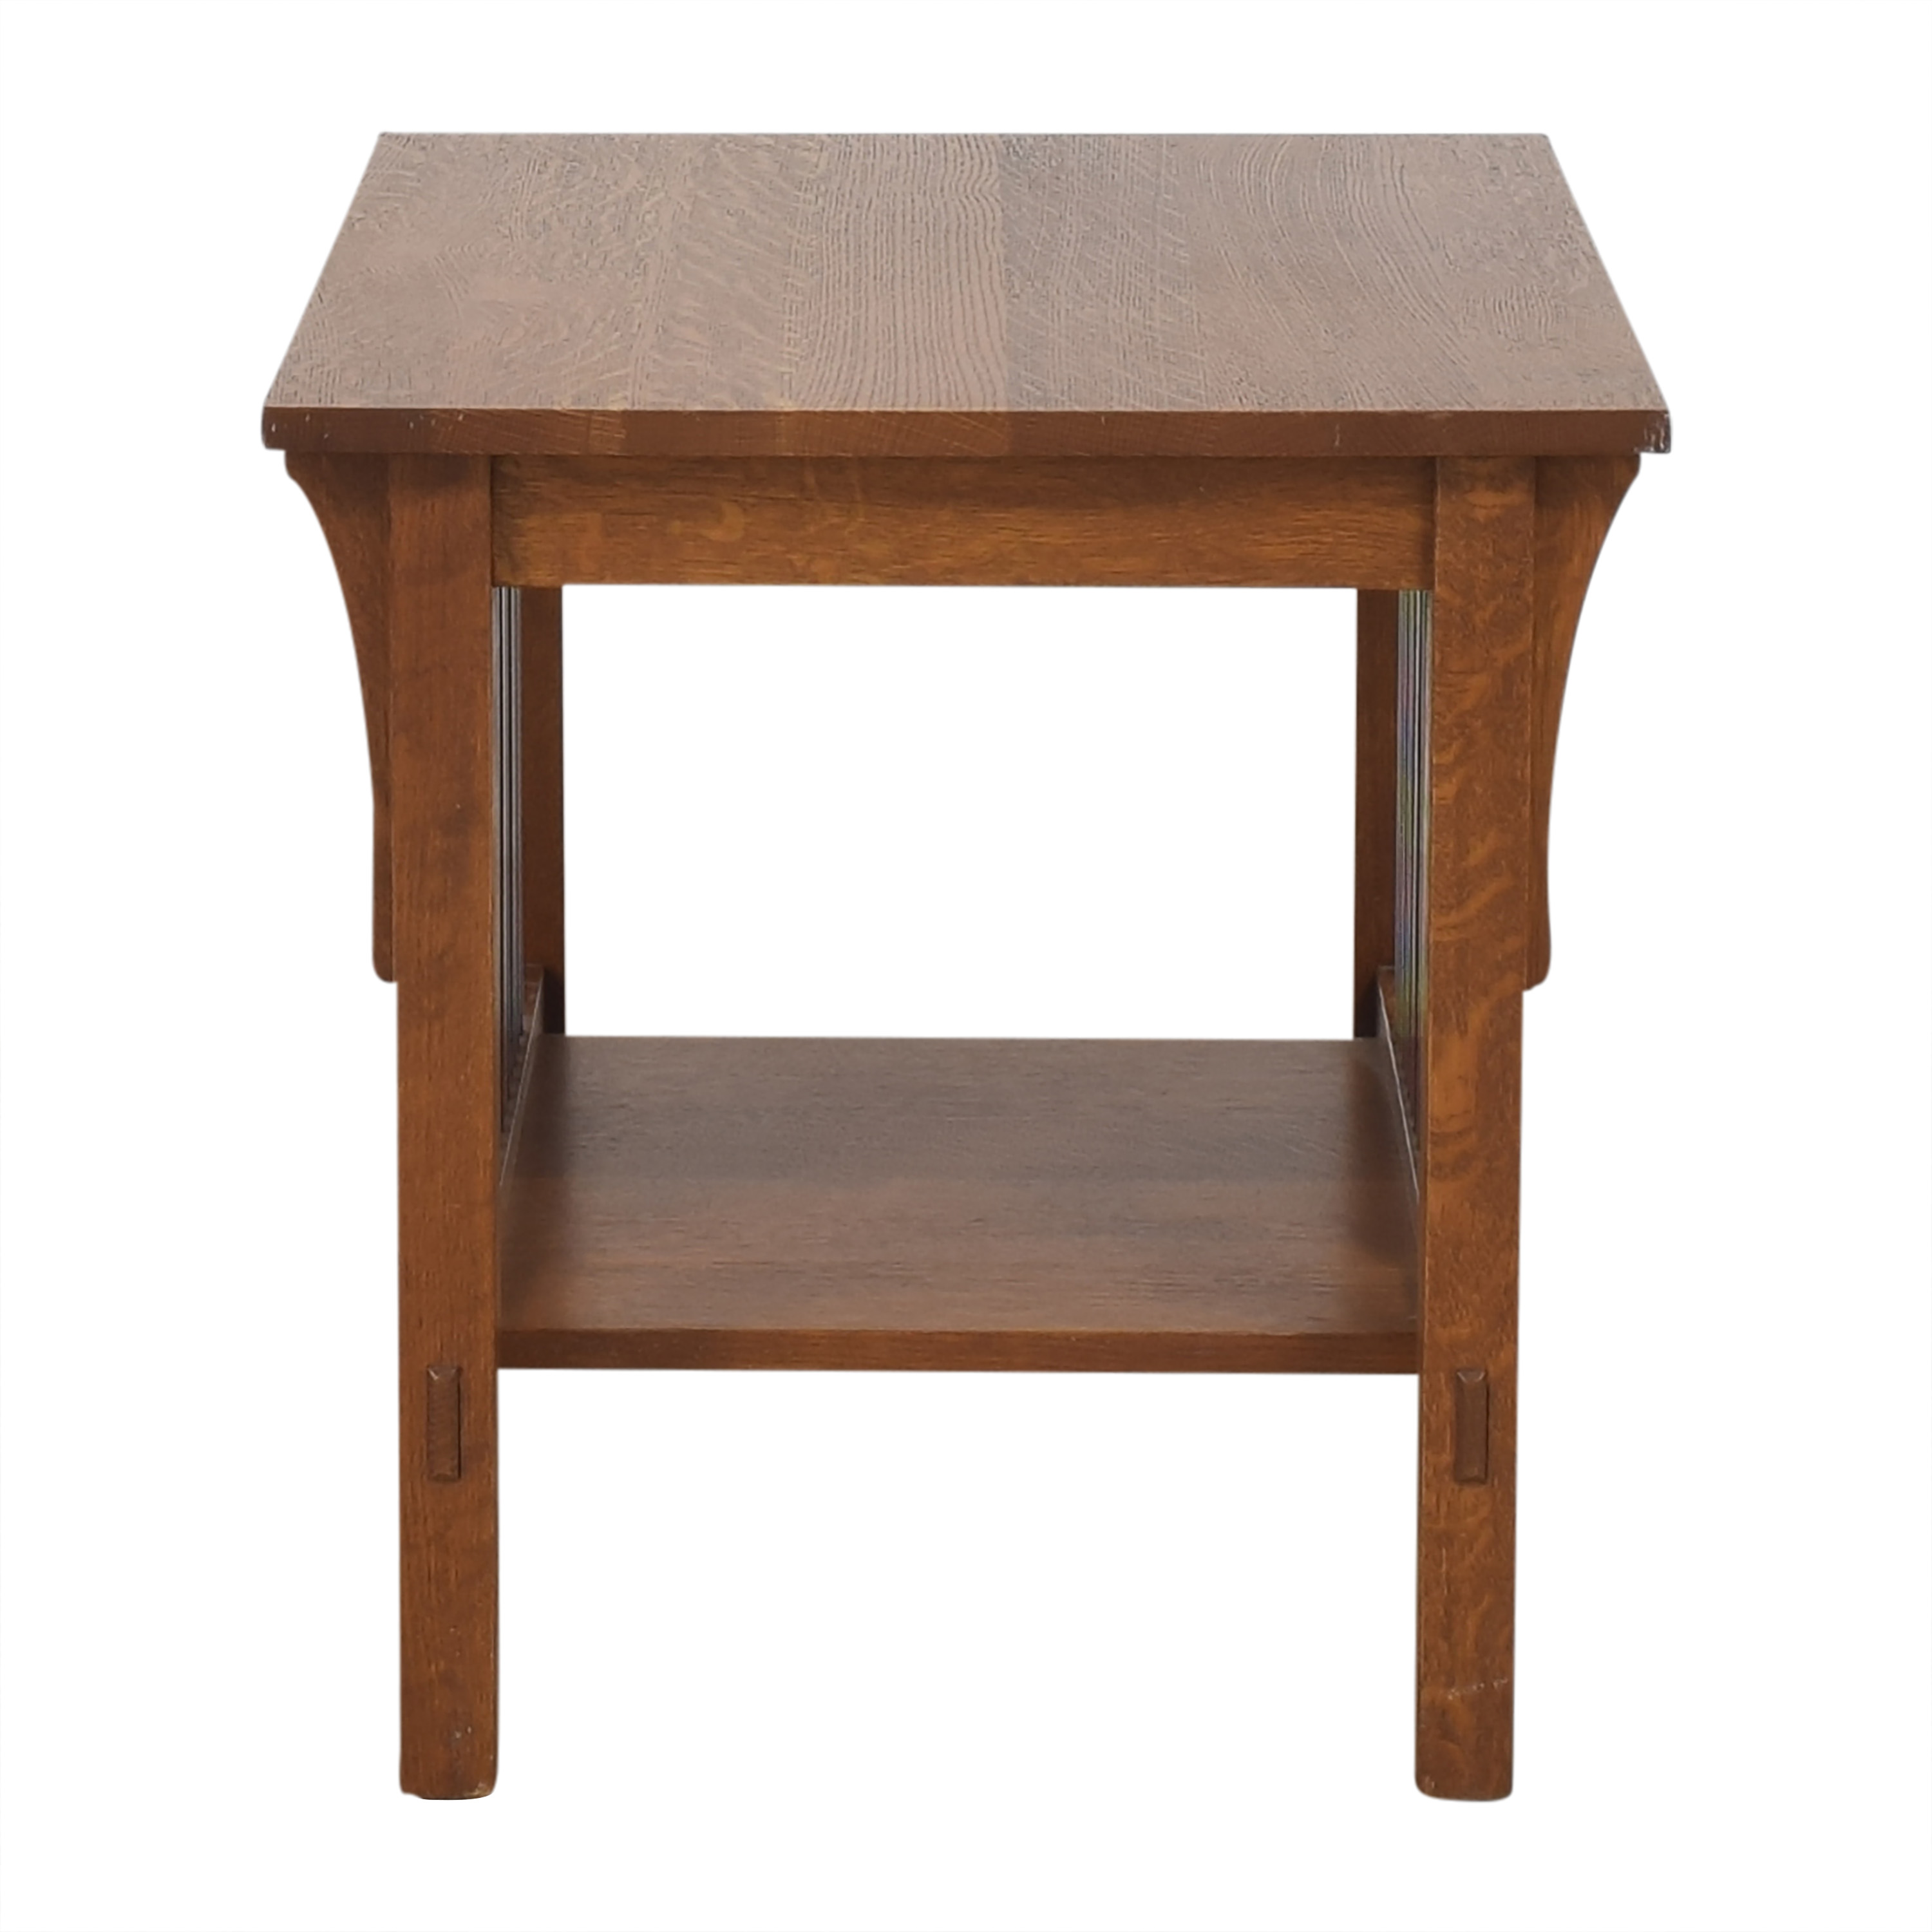 Stickley Furniture Stickley Furniture Mission-Style End Table brown